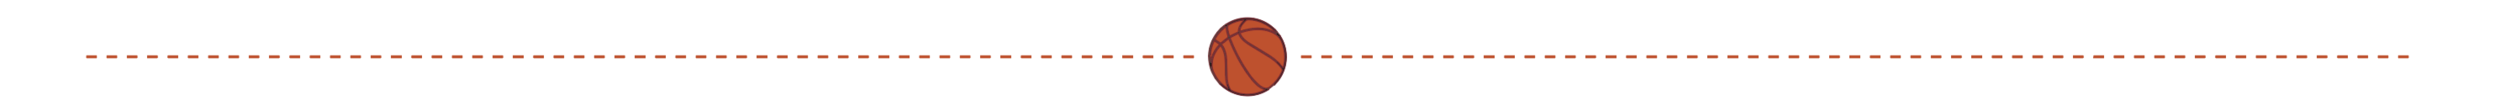 BBall_Line.png